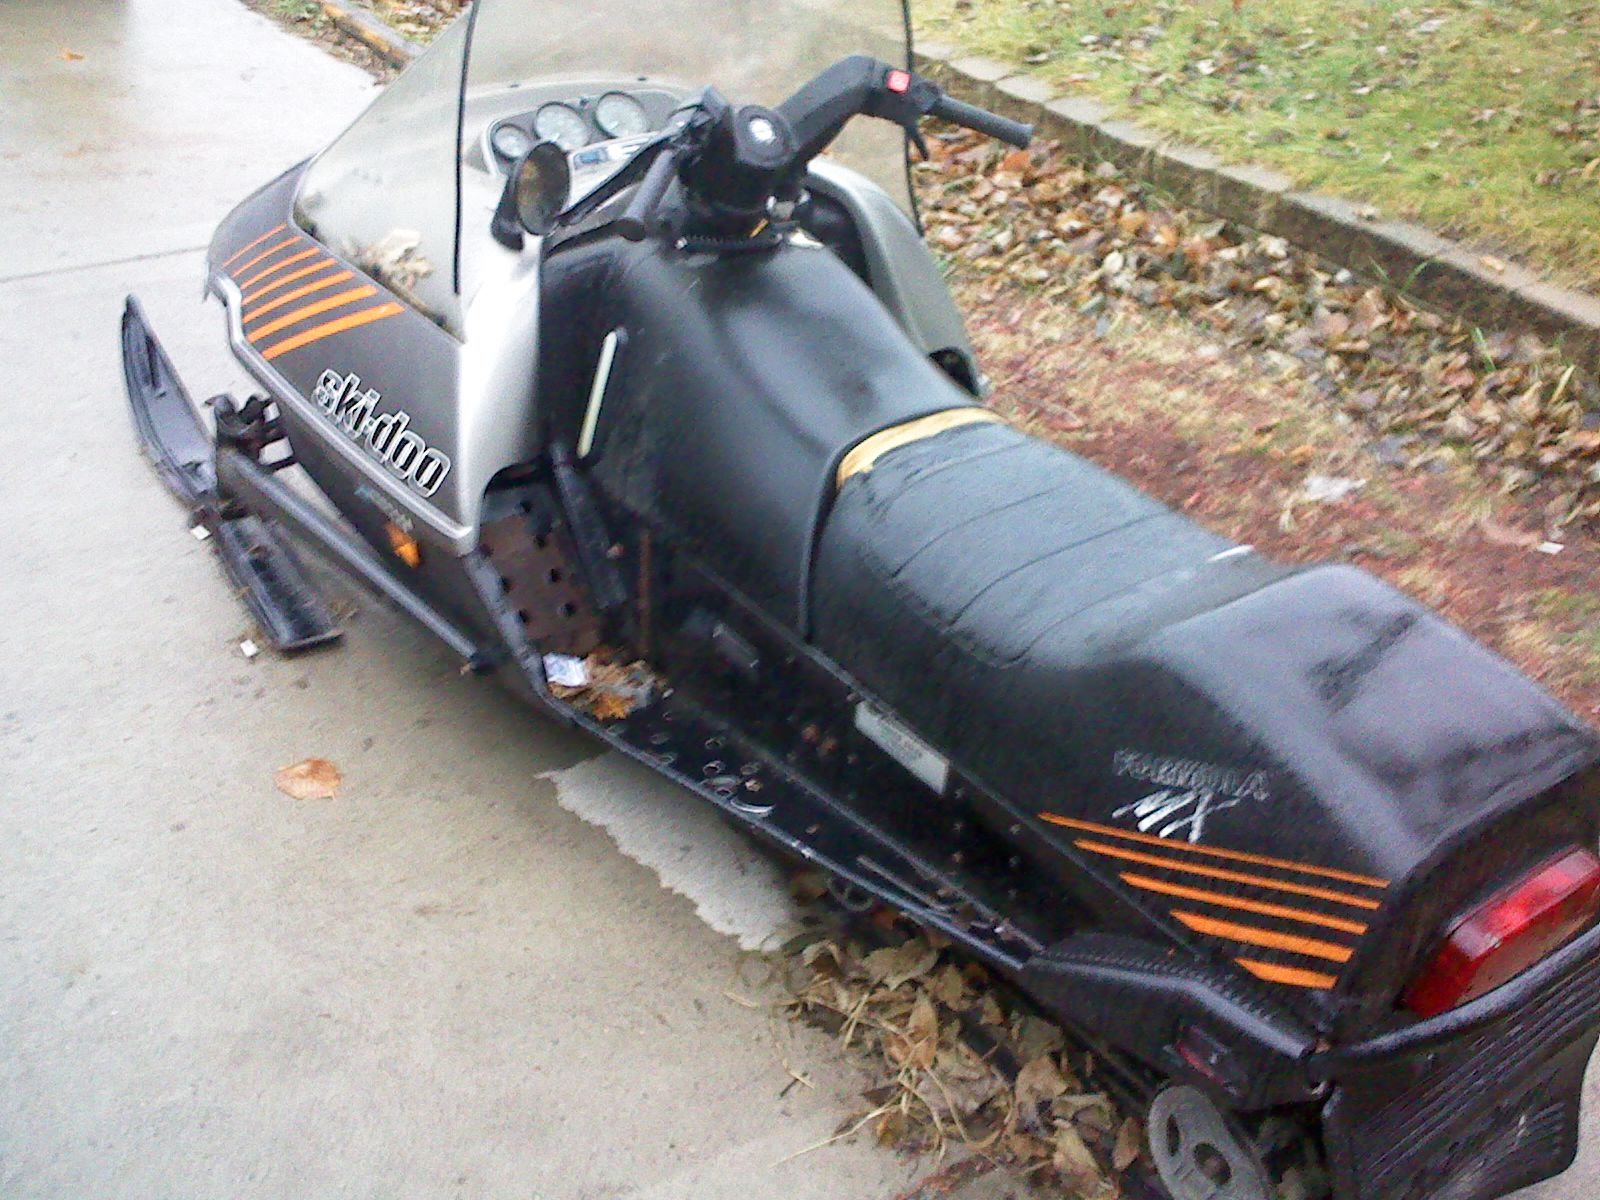 Ski Doo Legend Rotax V Twin also Sd Blizzard besides Toy Diecast Snowmobiles together with Ski Doo Brv Poster likewise Ski Doo Freeride Featured. on first ski doo snowmobile